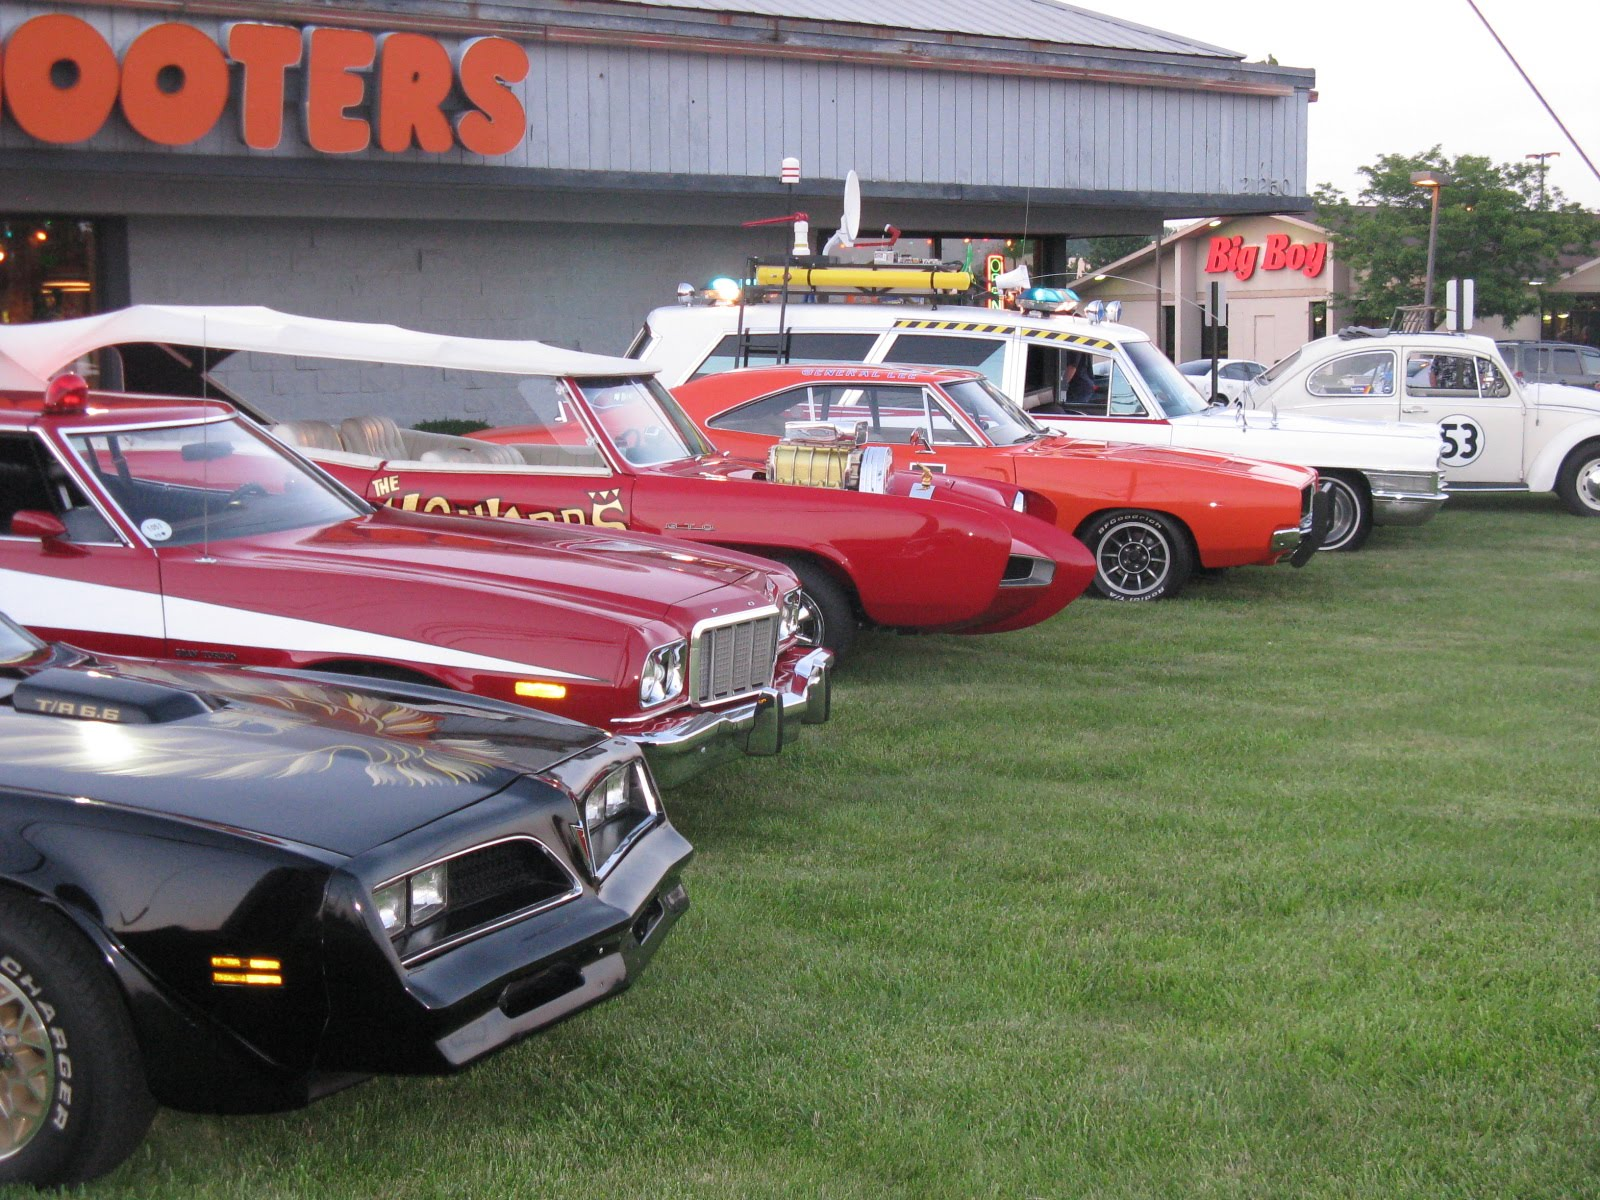 BRBTV News Blog: Cruisin\' with some great classic star cars